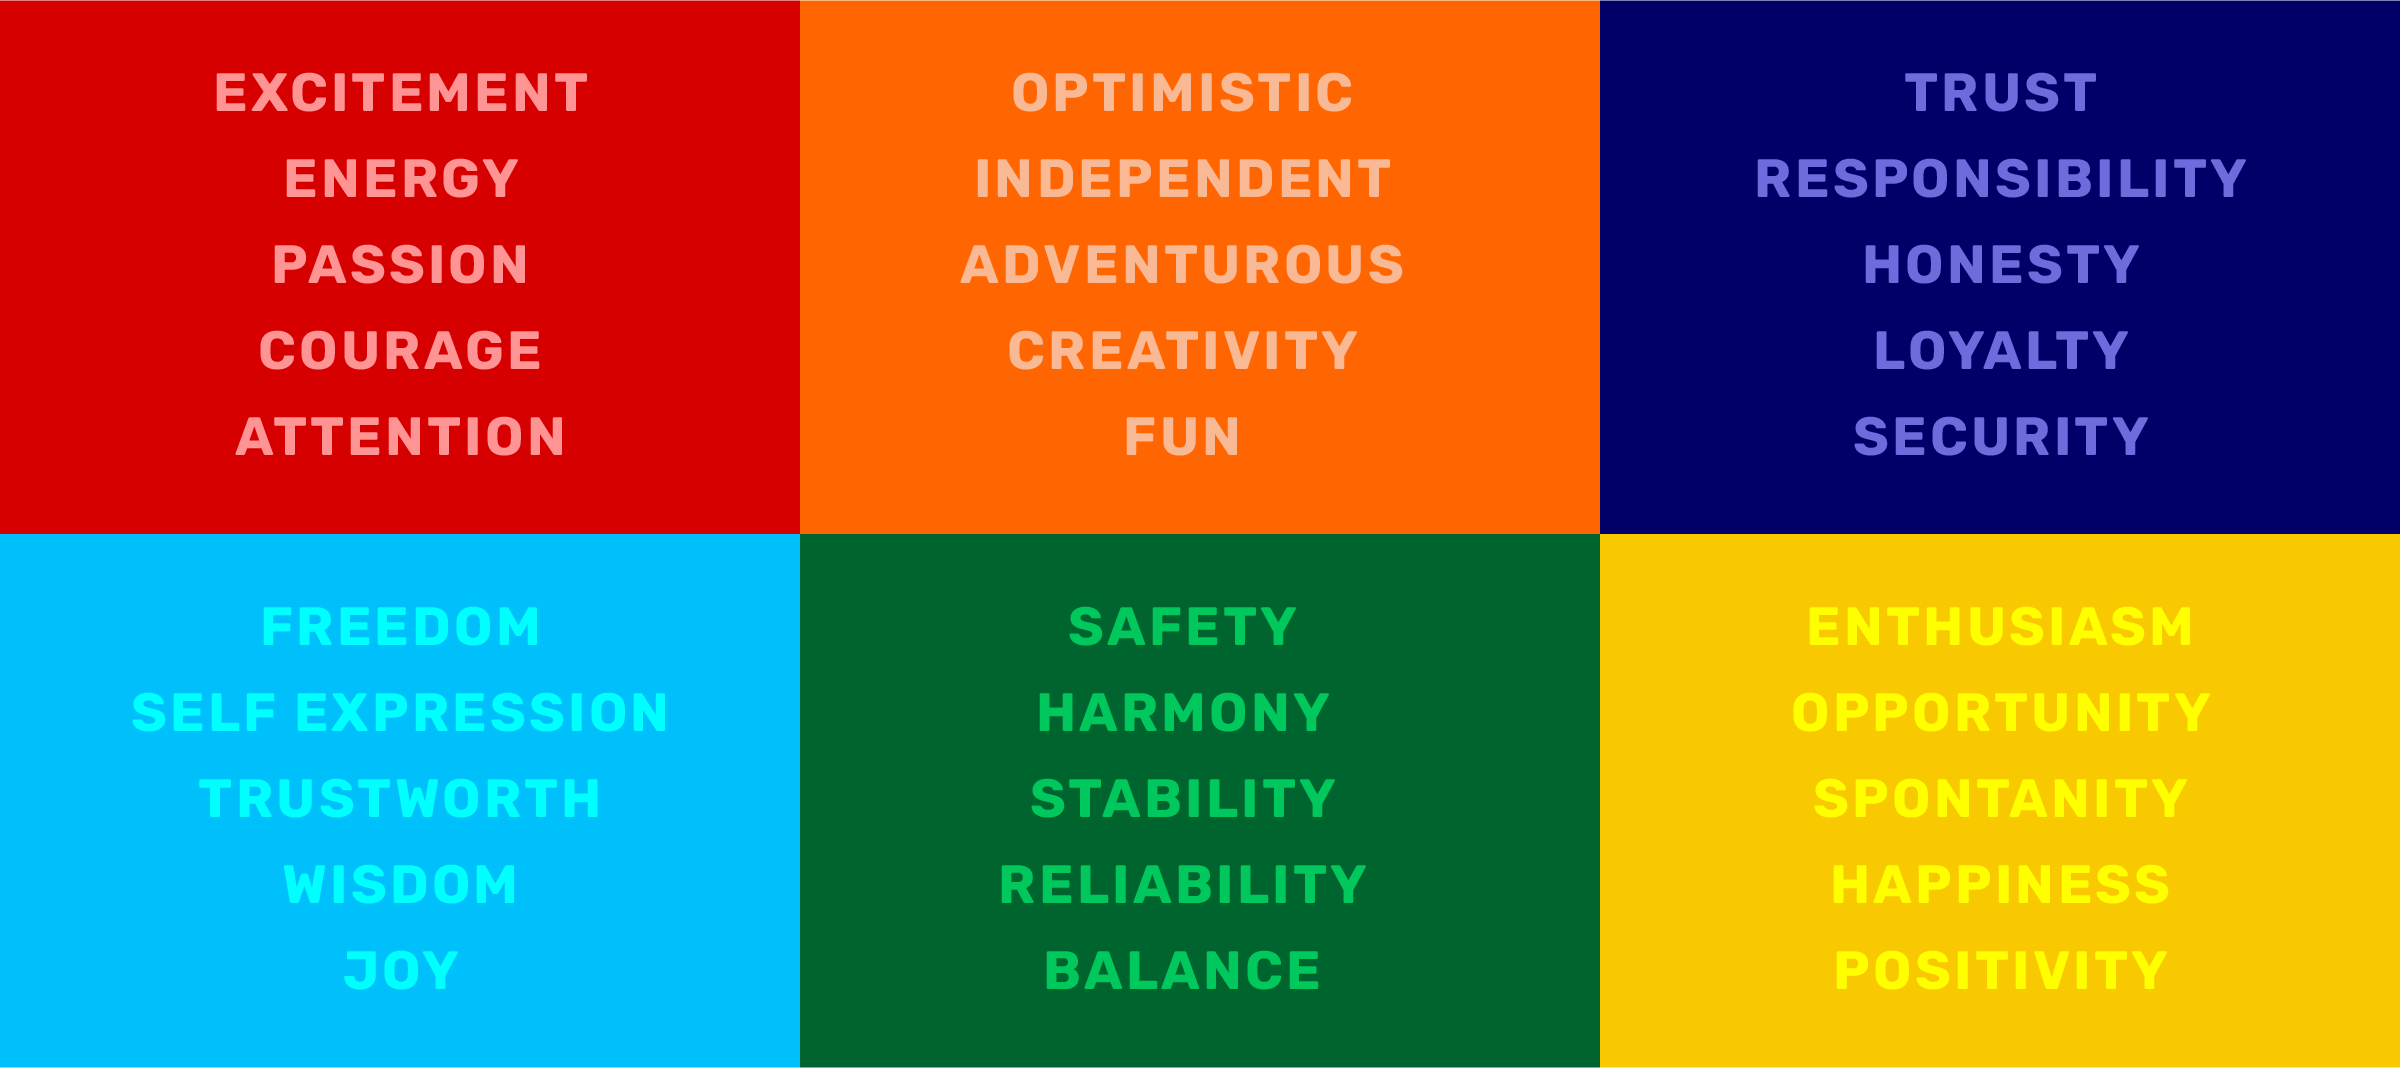 Make an Impact: Creative Ways to Make Your Website Stand Out Article color theory image